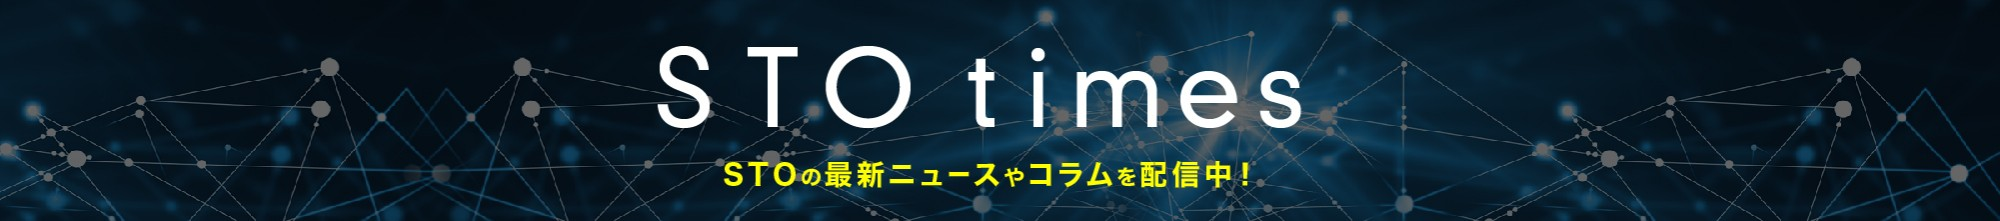 最新STO(Security Token Offering)ニュースのSTOtimes